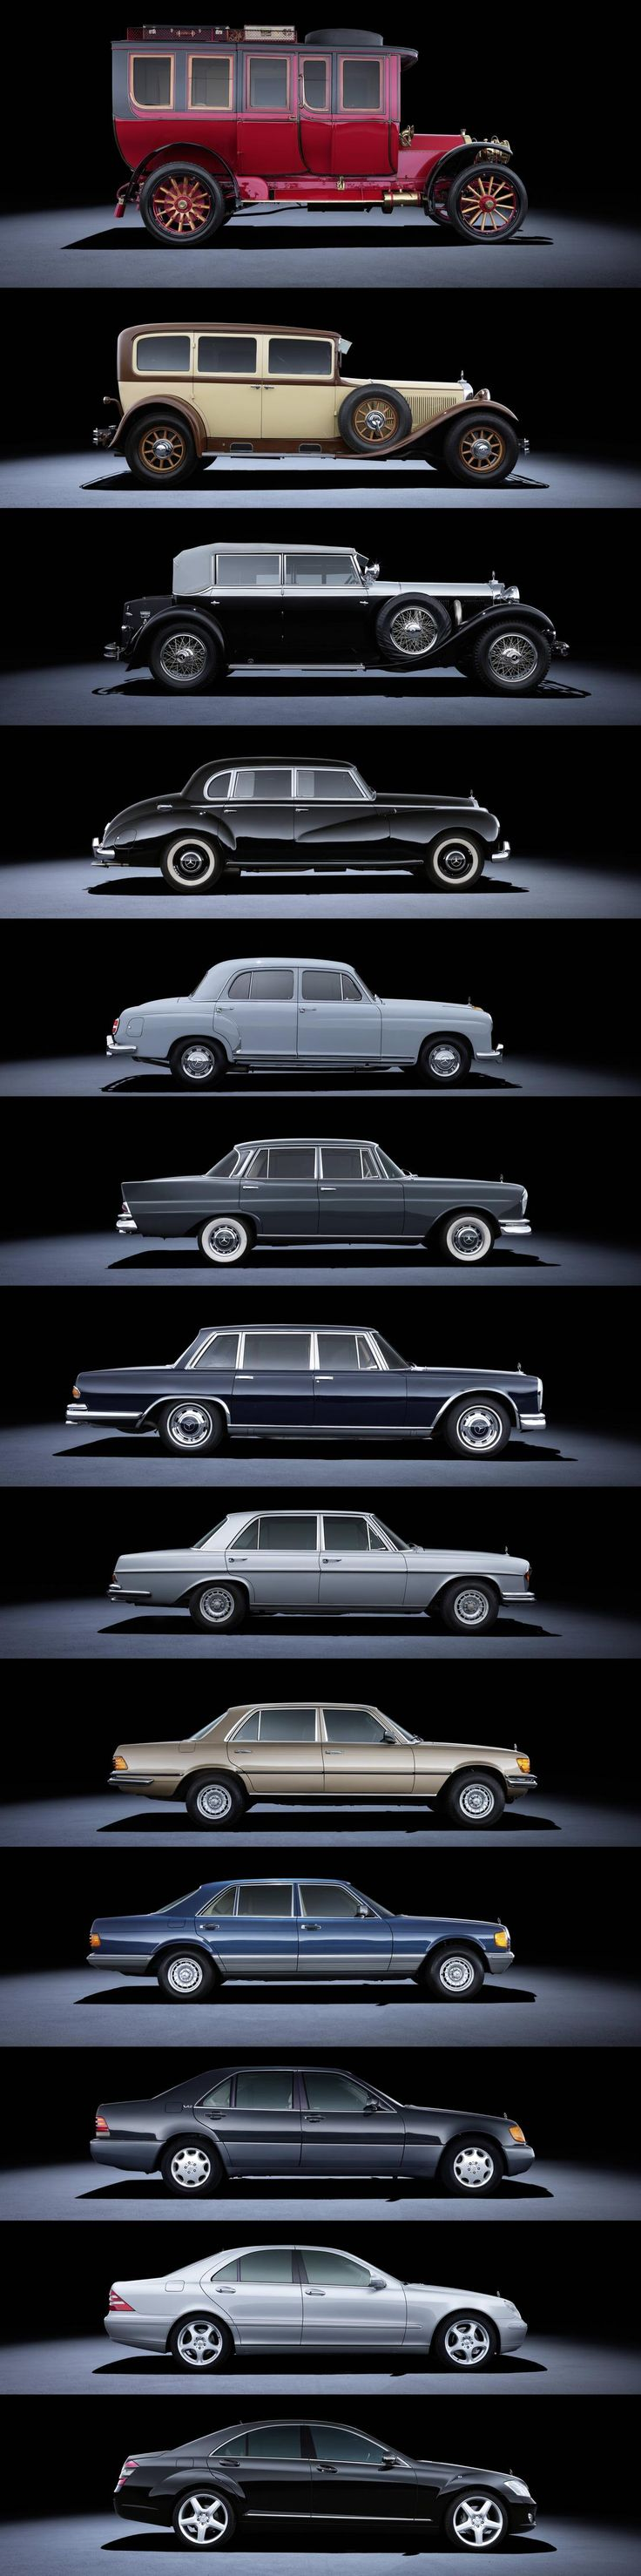 172 best Mercedes Benz images on Pinterest